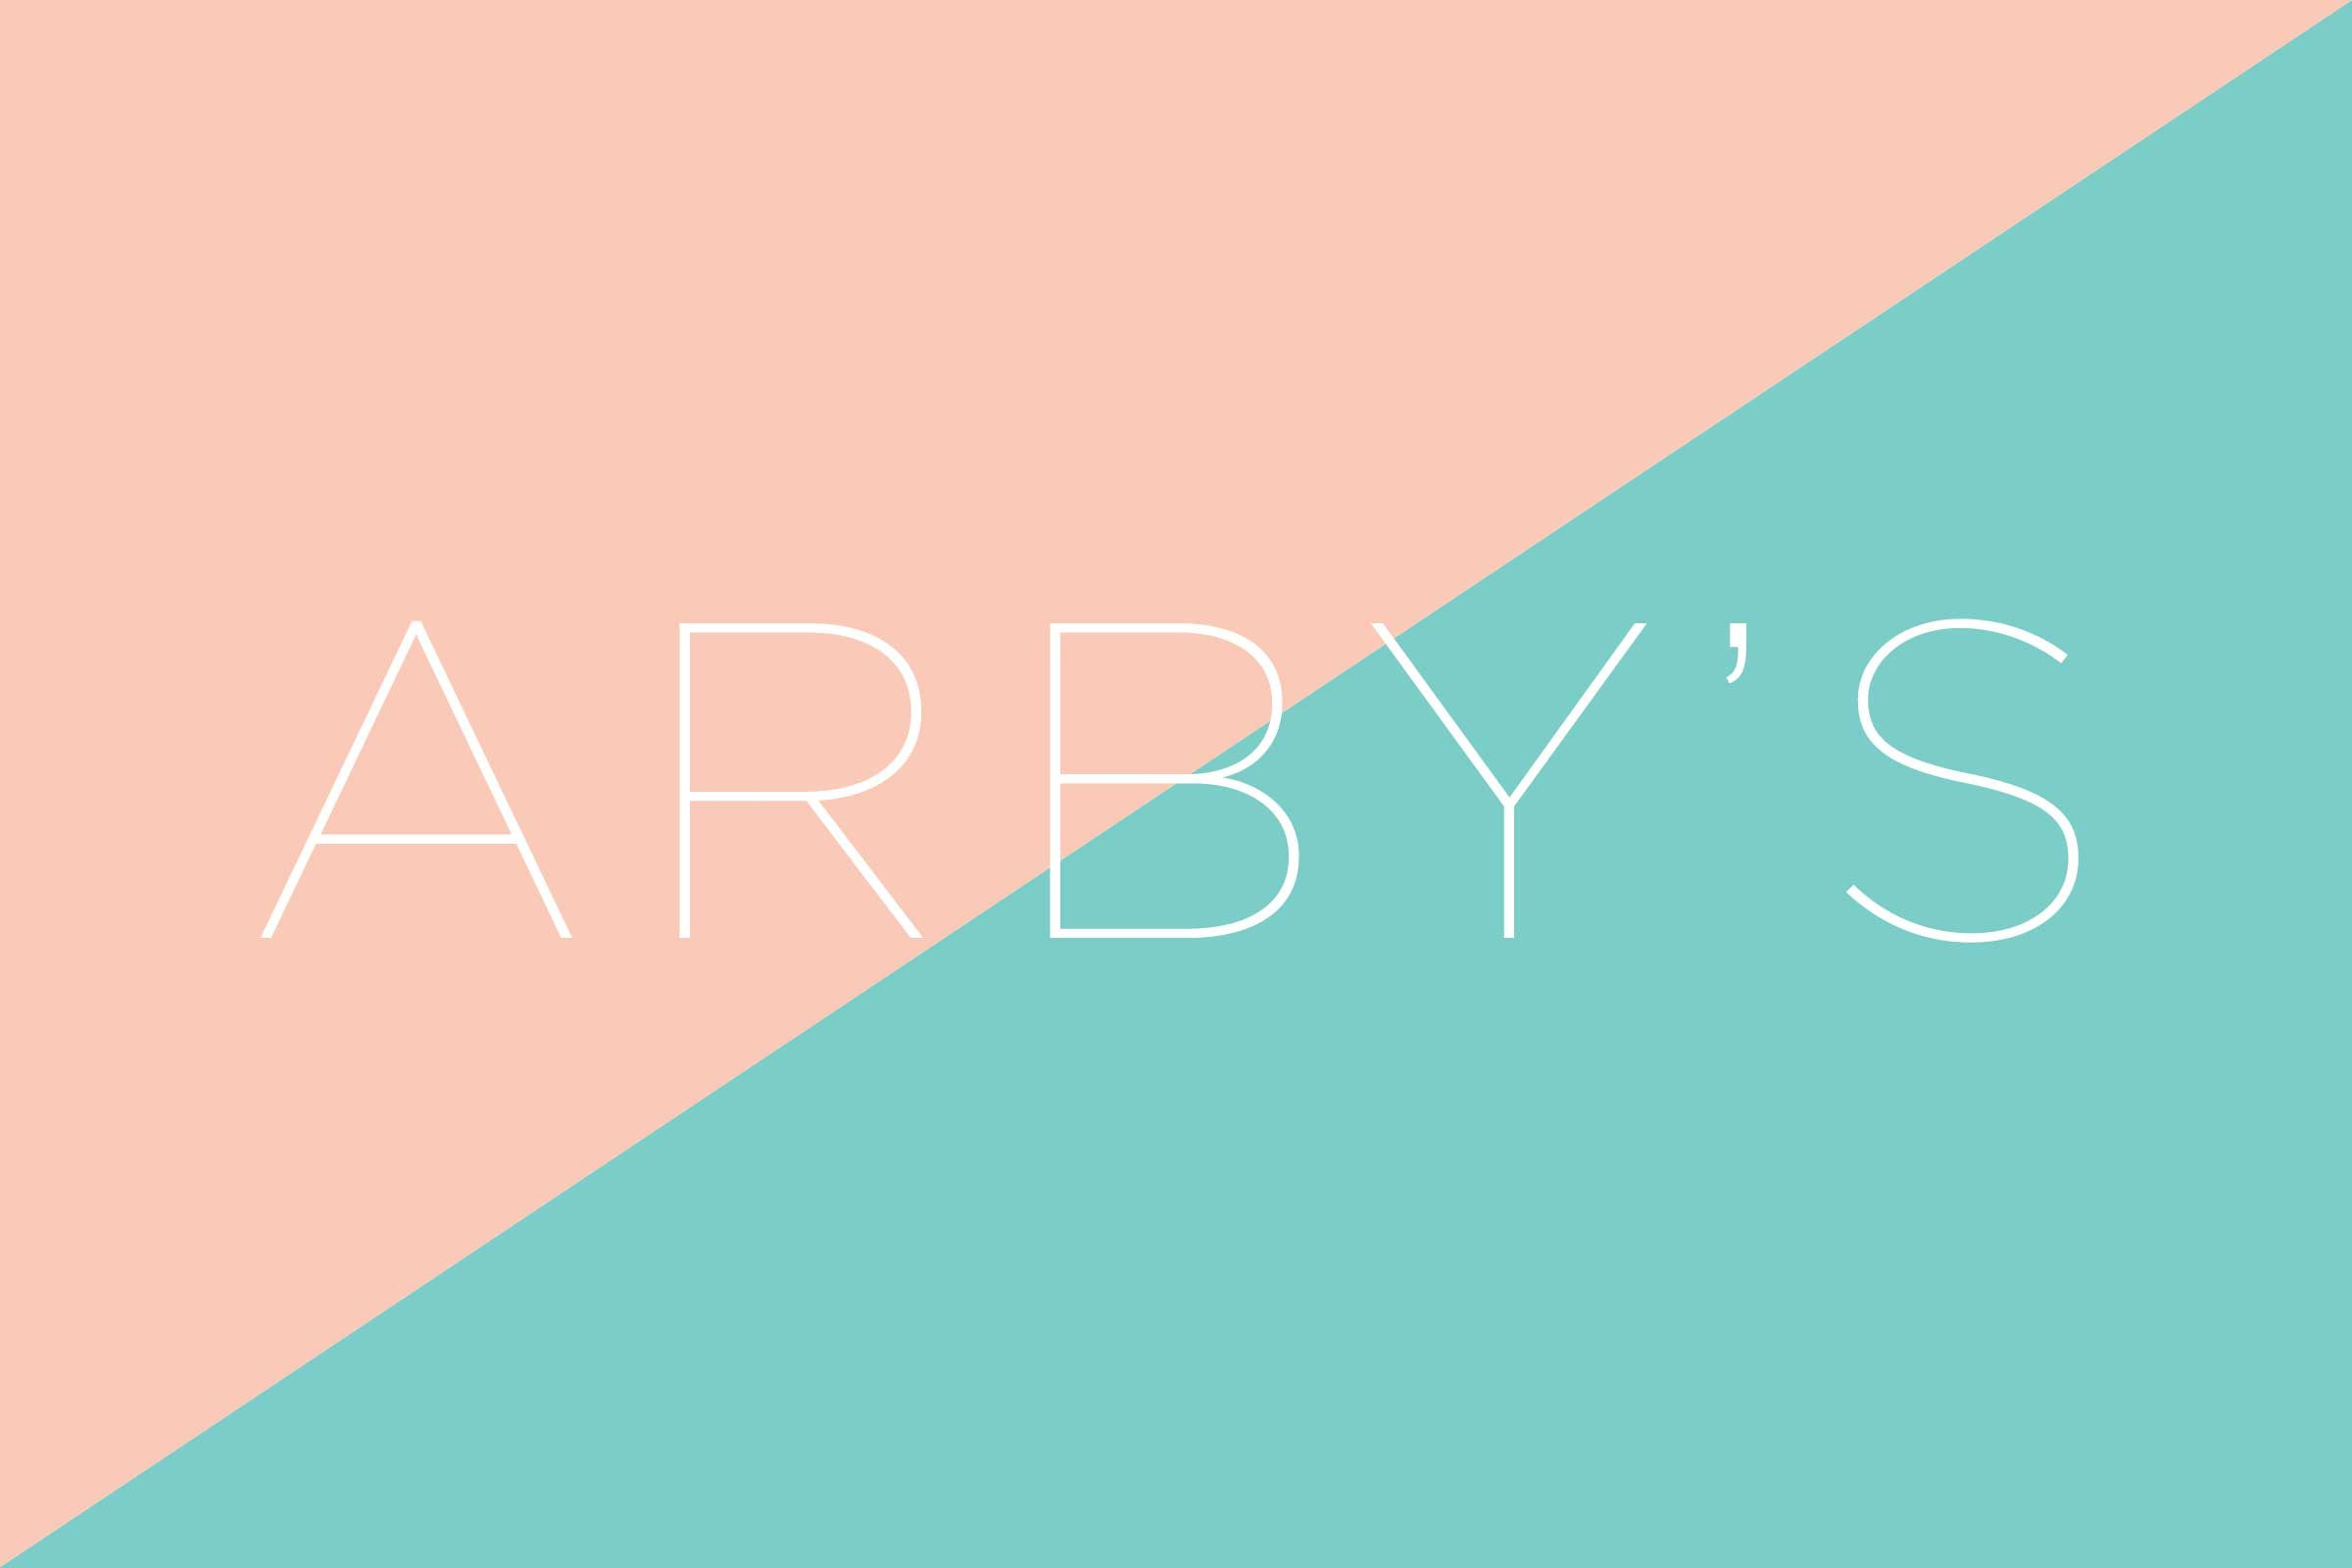 What does Arby's stand for?